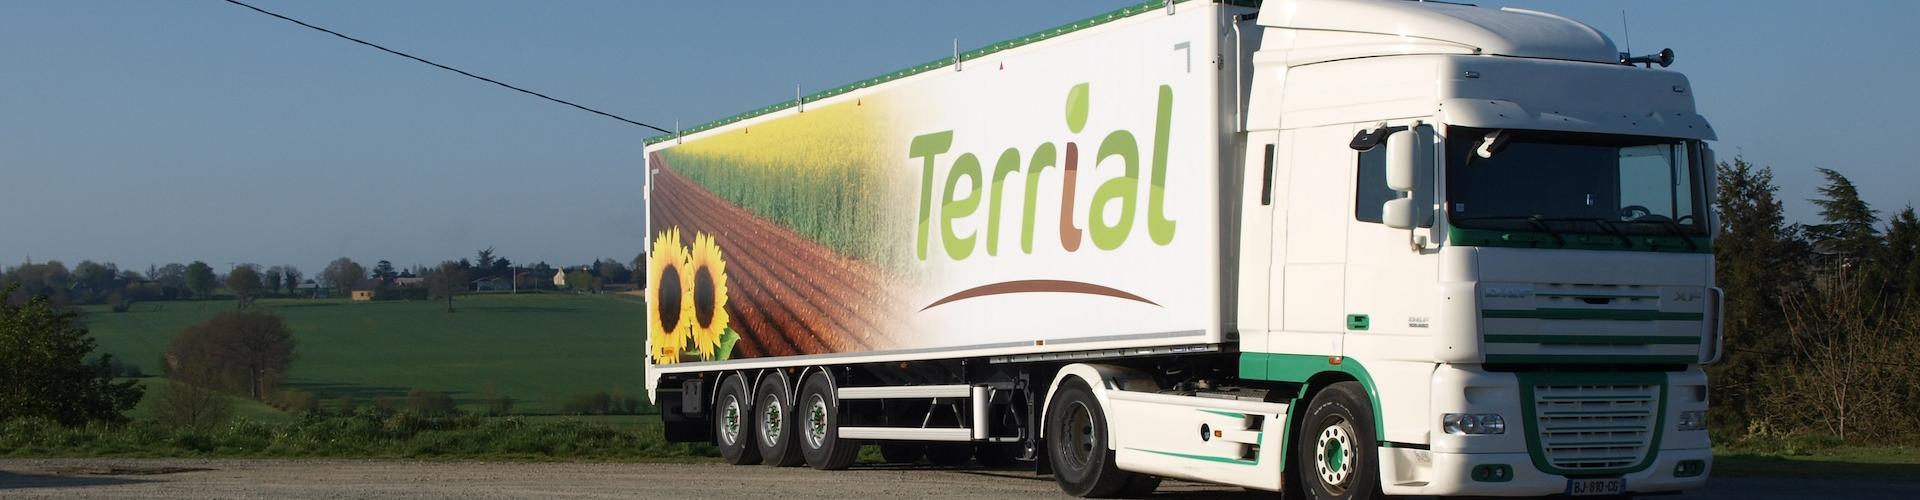 Terrial - Distribution